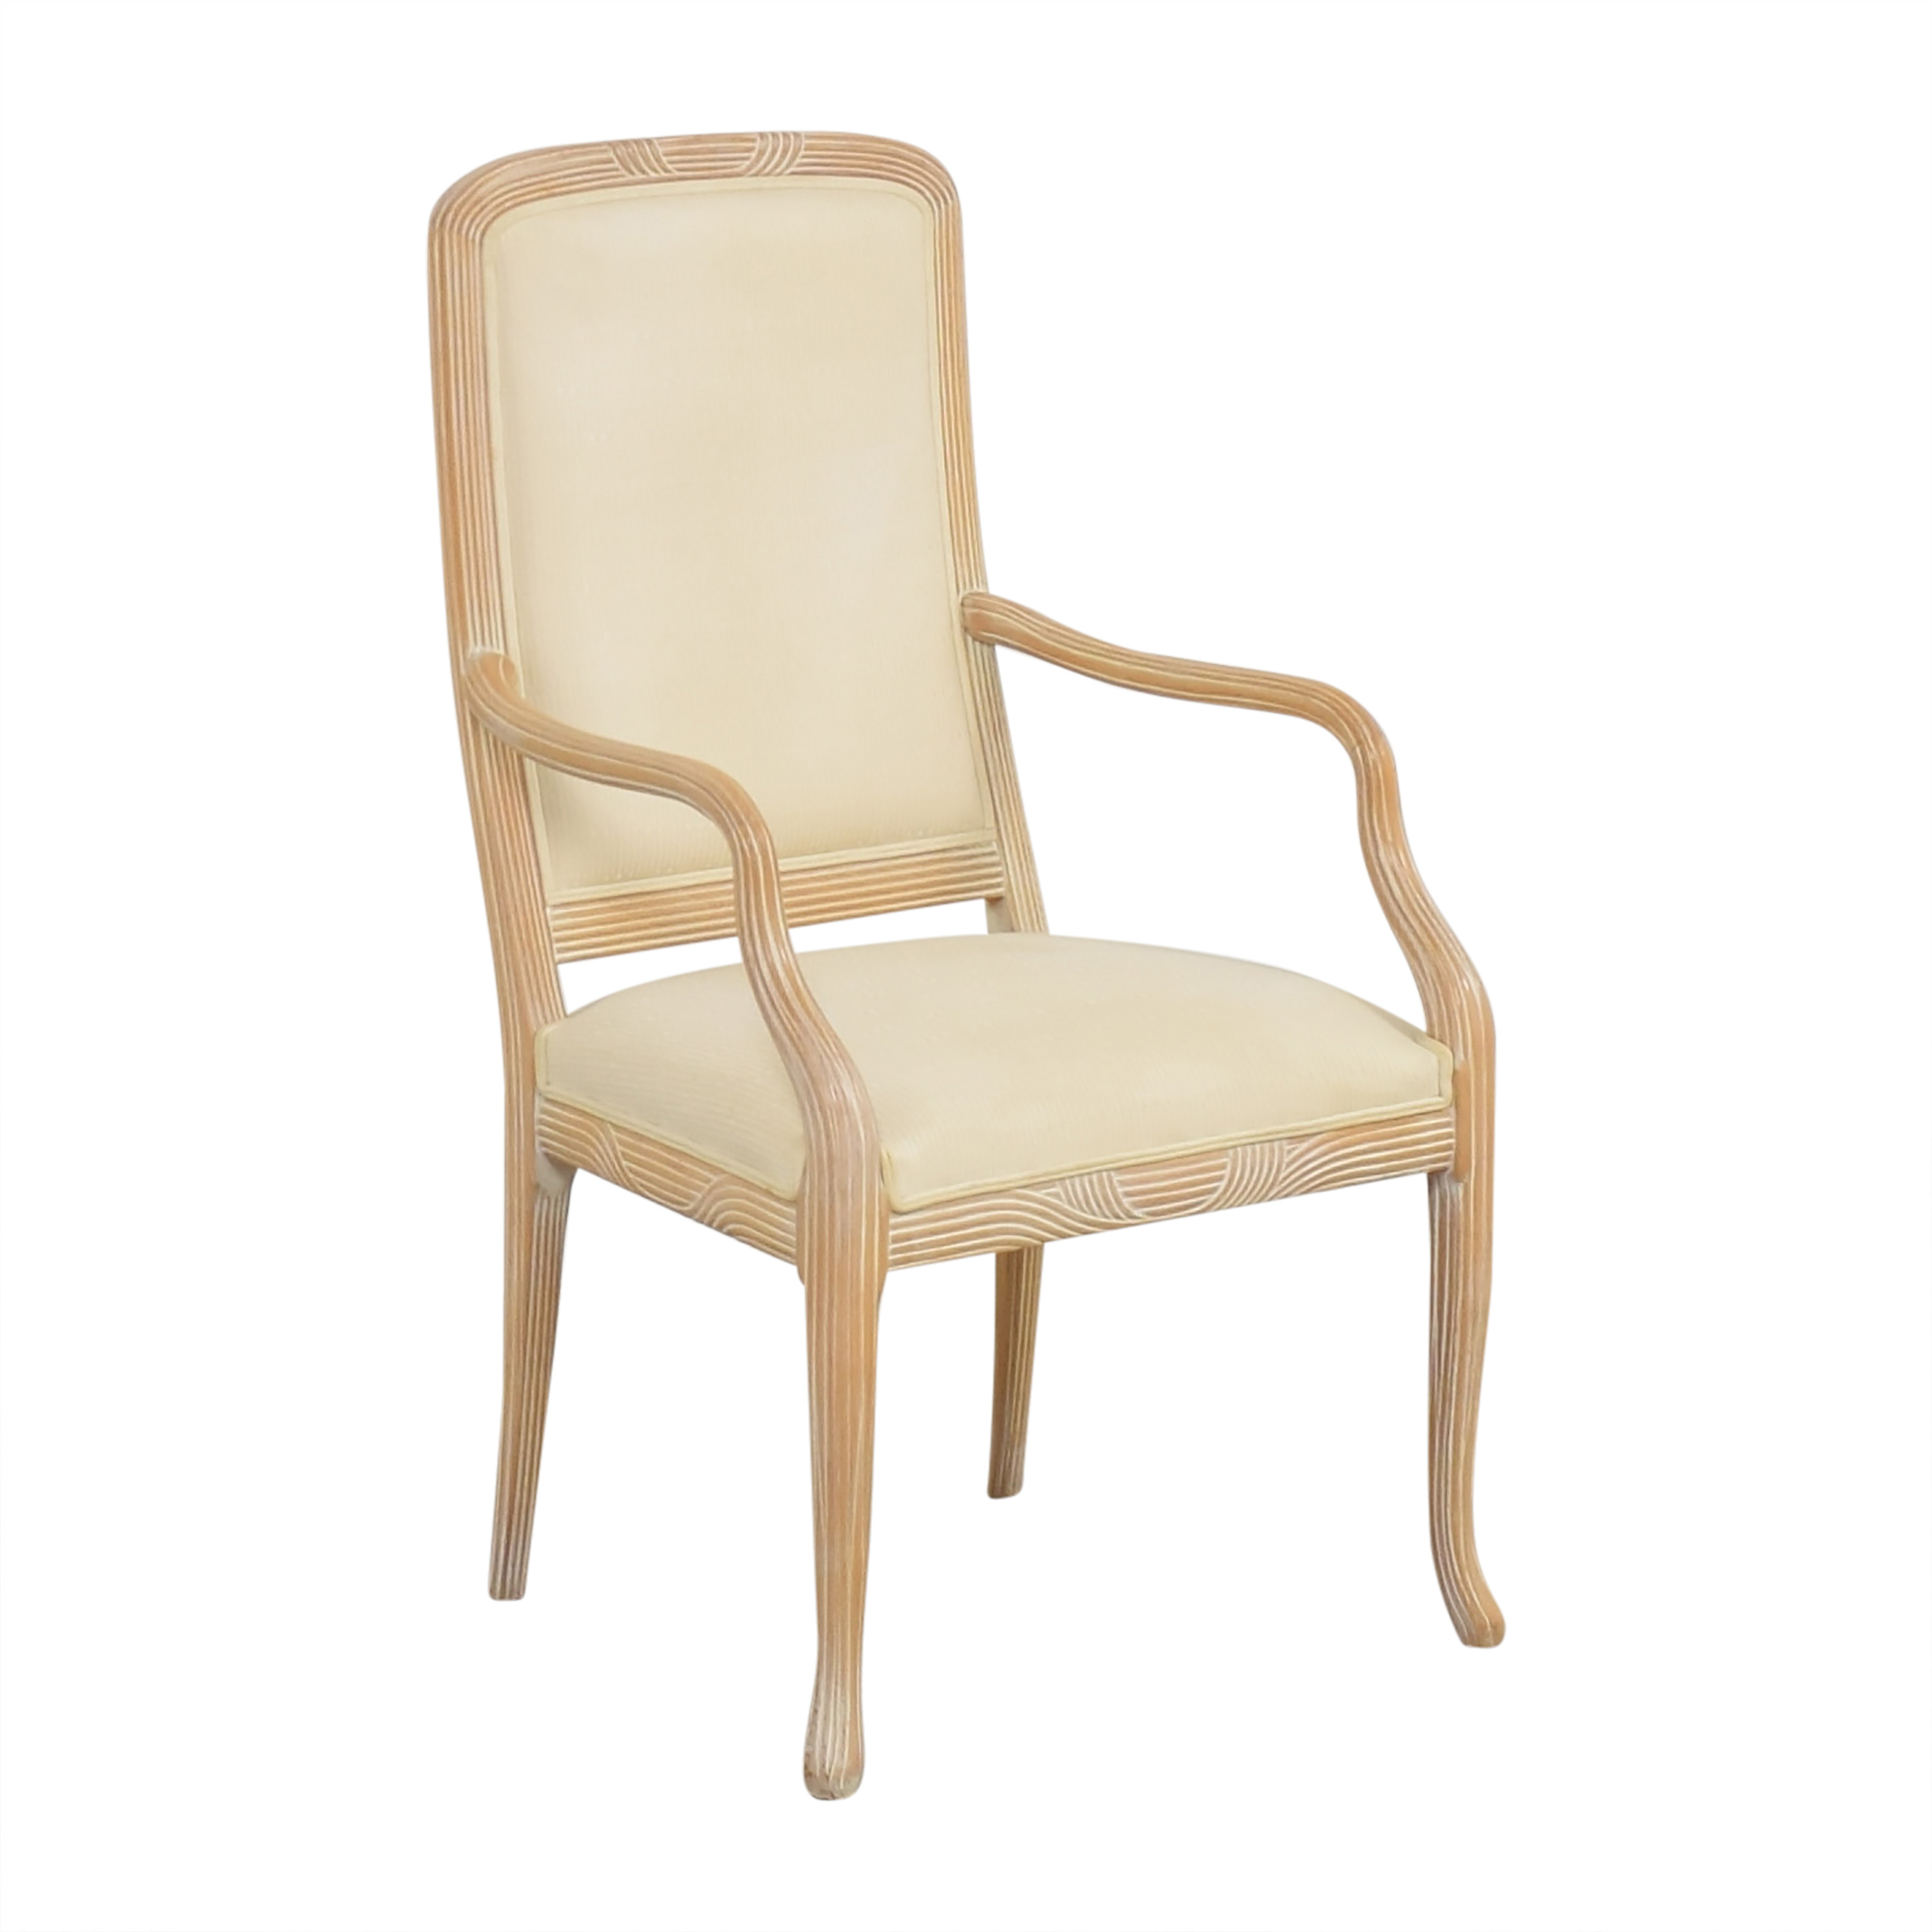 Buying & Design Upholstered Dining Arm Chair / Dining Chairs